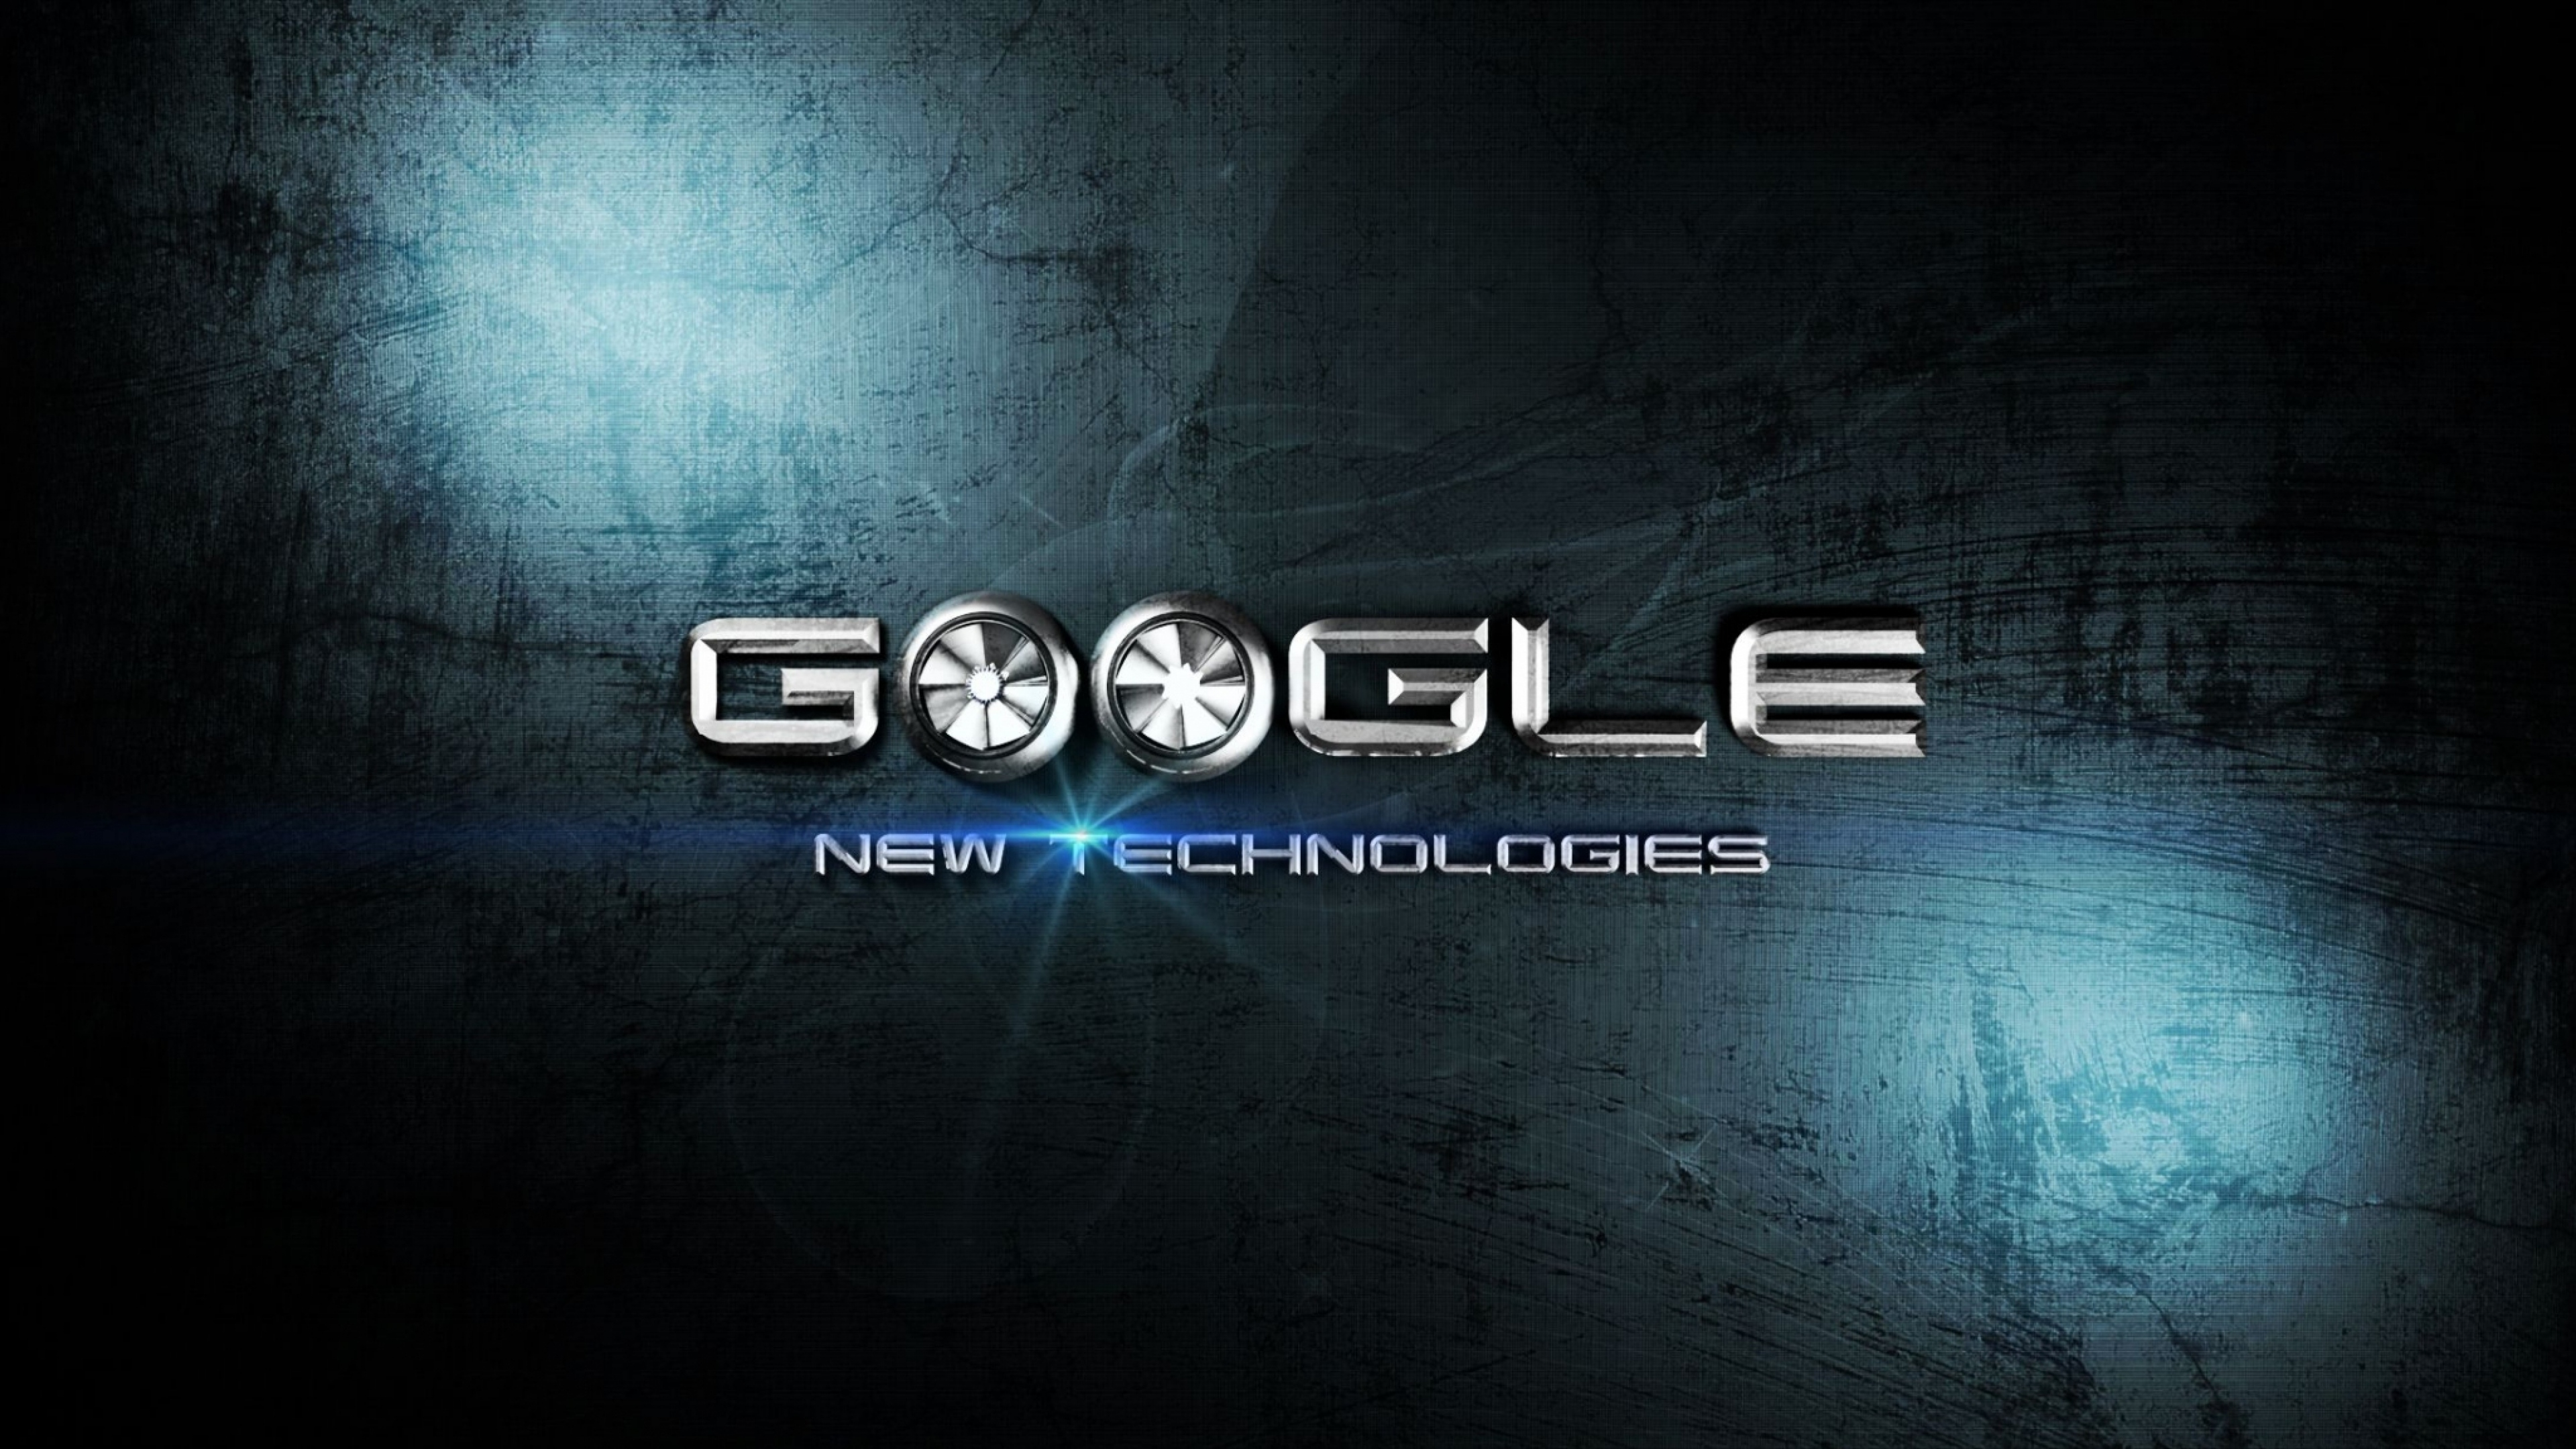 Hi tech Google New technologies Wallpaper Background 4K Ultra HD 3840x2160